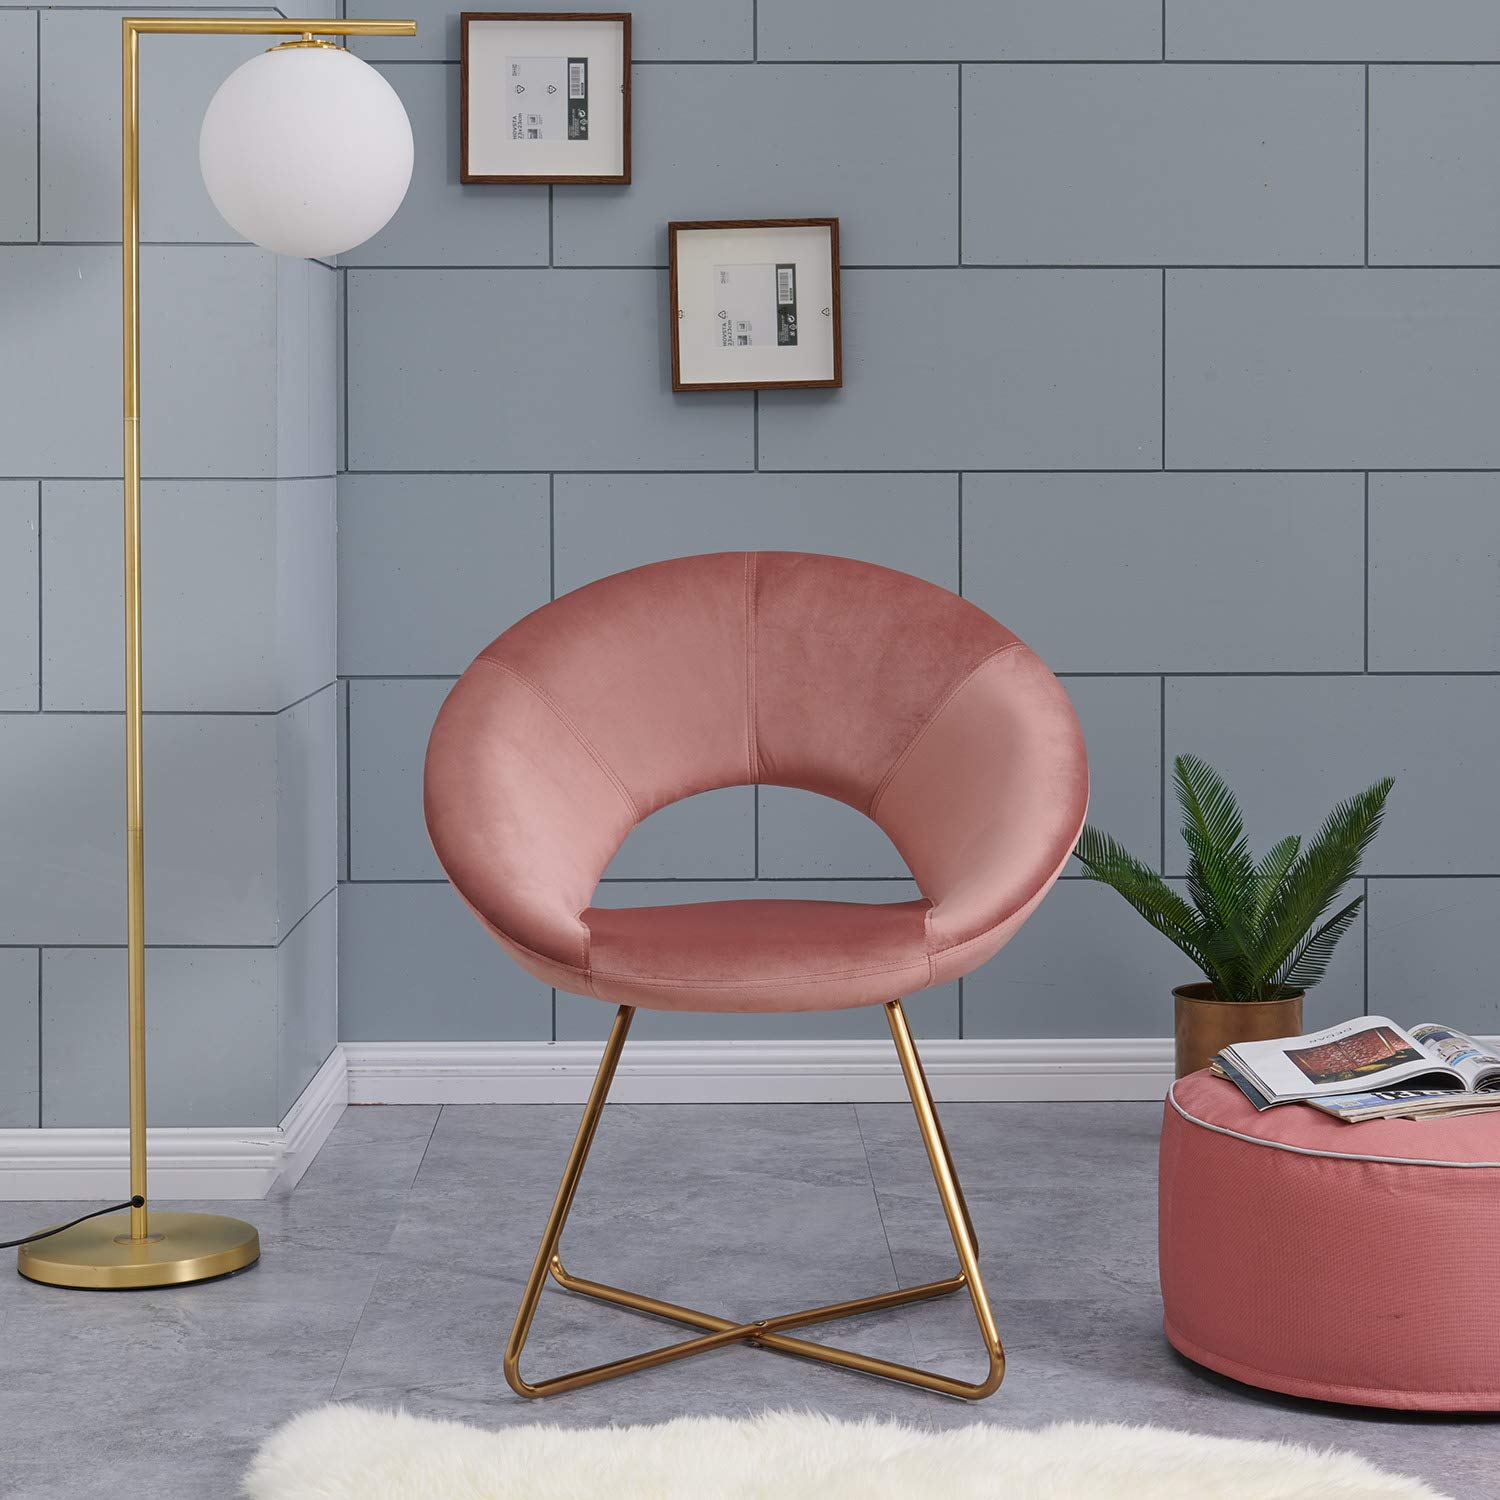 Charmant Amazon.com: Contemporary Modern Velvet Chairs Single Sofa Comfy Upholstered Arm  Accent Chair Living Room Bedroom Furniture Pink: Kitchen U0026 Dining